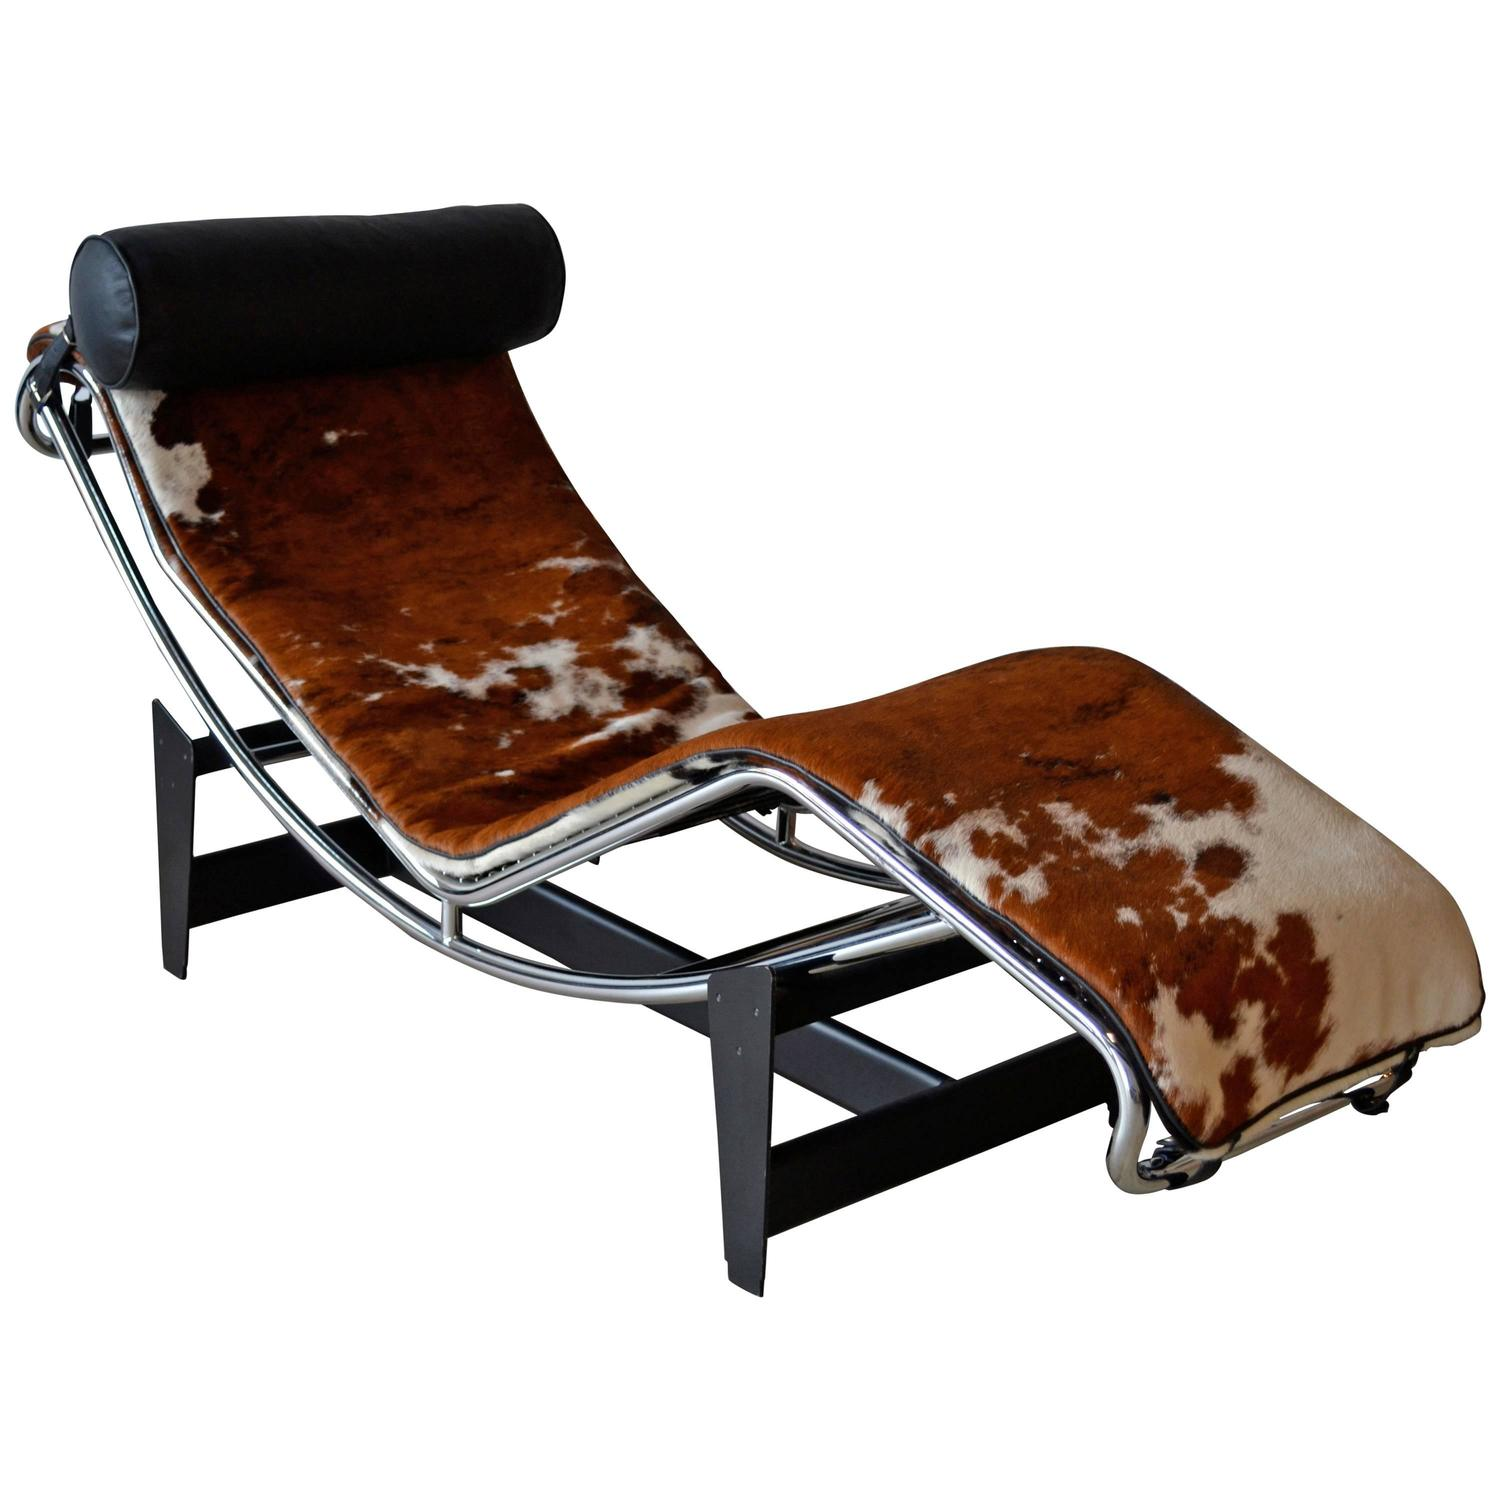 Lc4 le corbusier chaise lounge chair at 1stdibs for Chaise corbusier